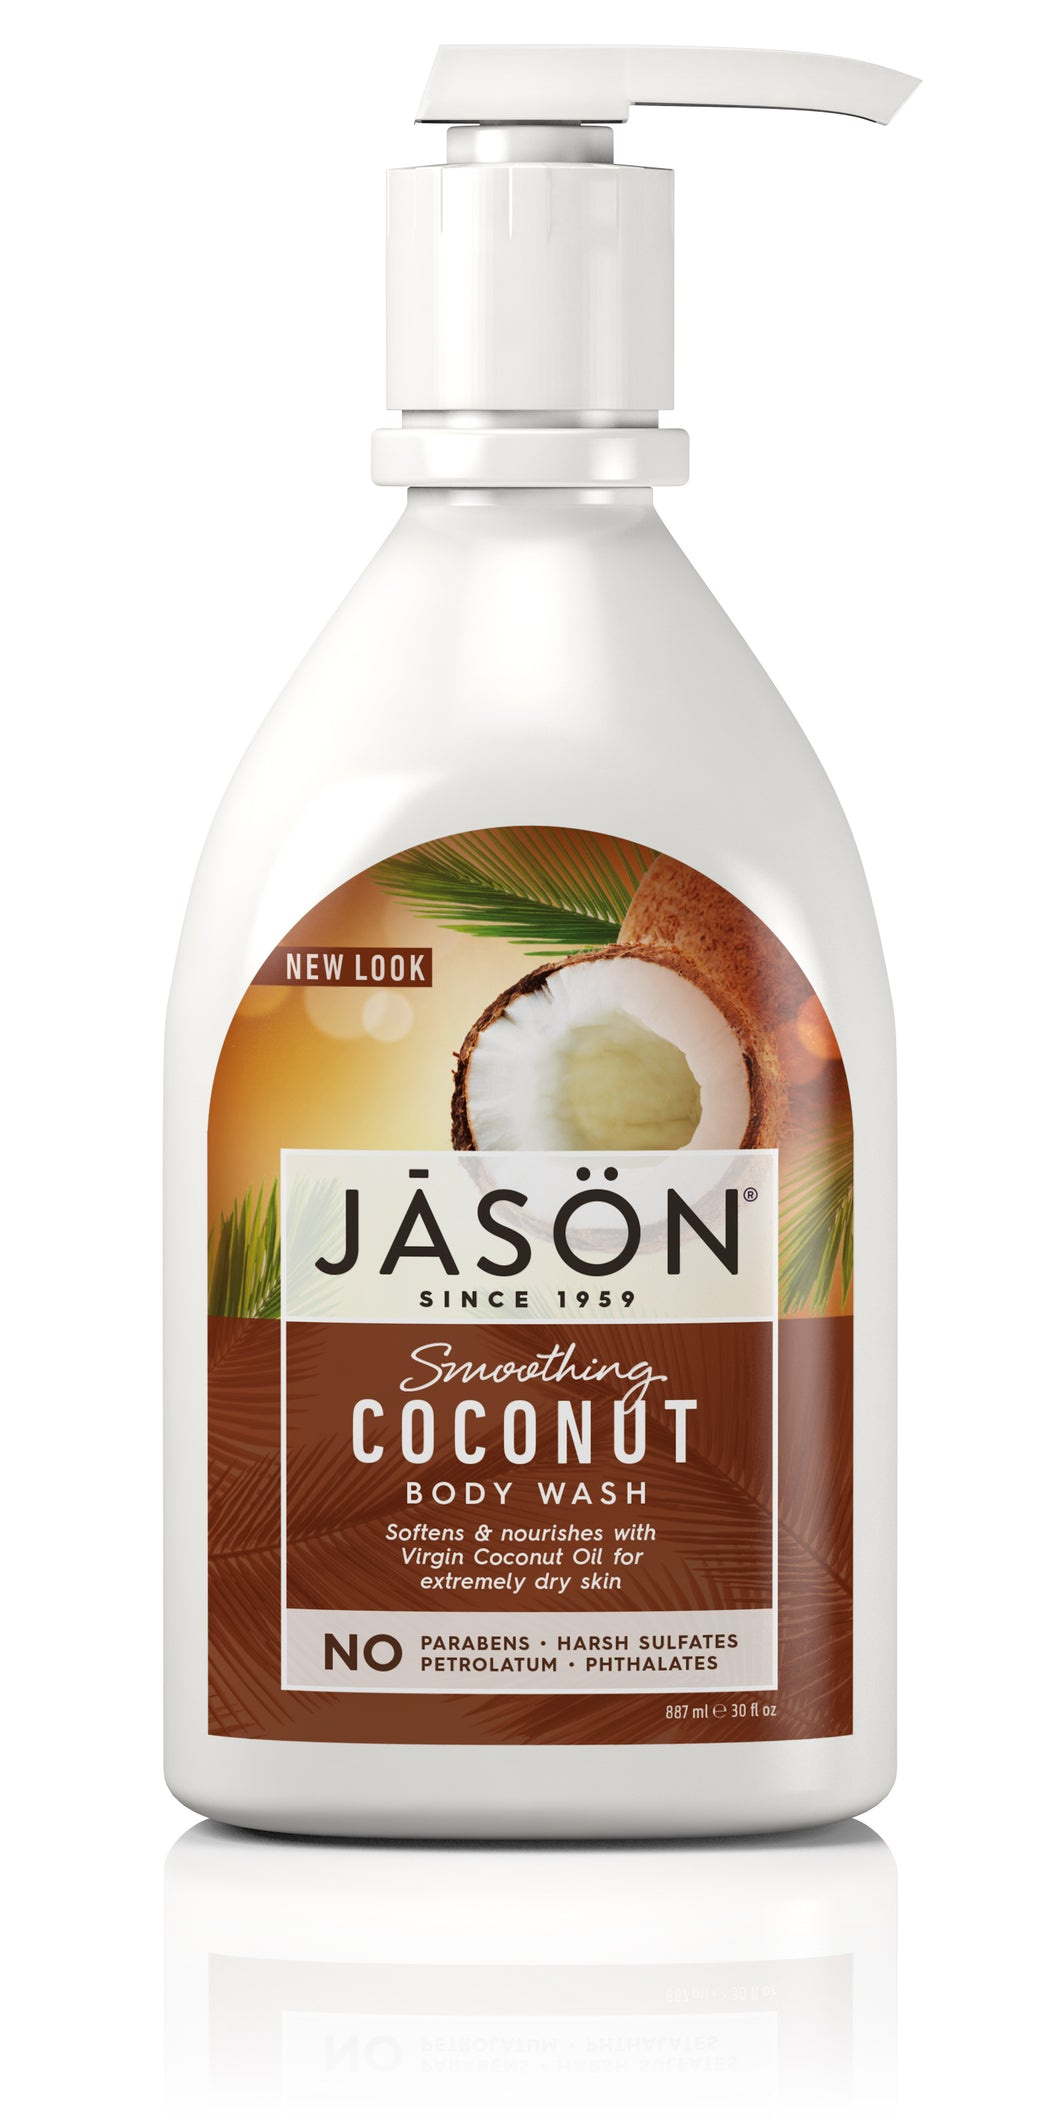 Smoothing Coconut Body Wash